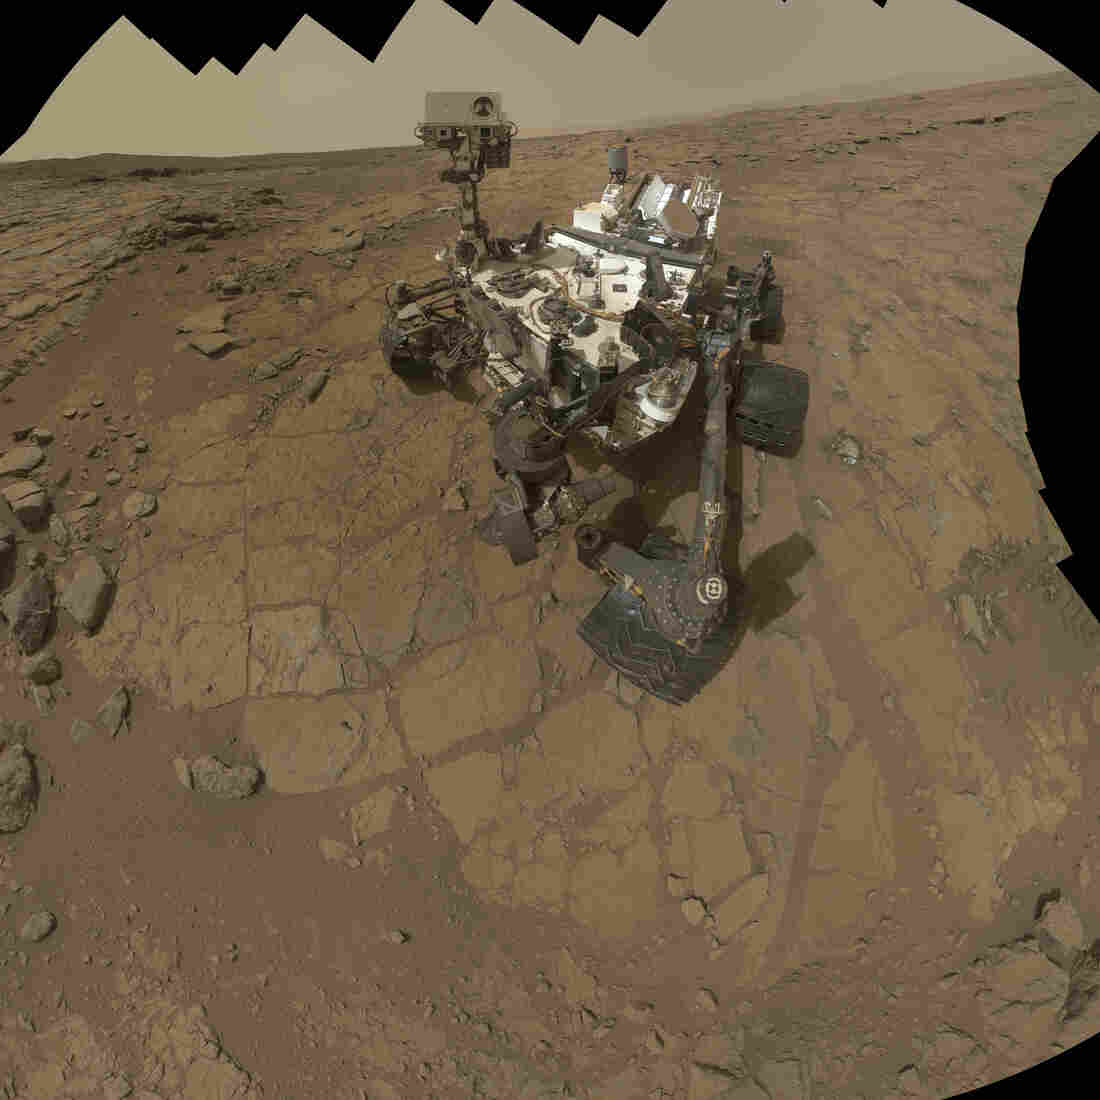 The Mars rover Curiosity took this self-portrait in February.